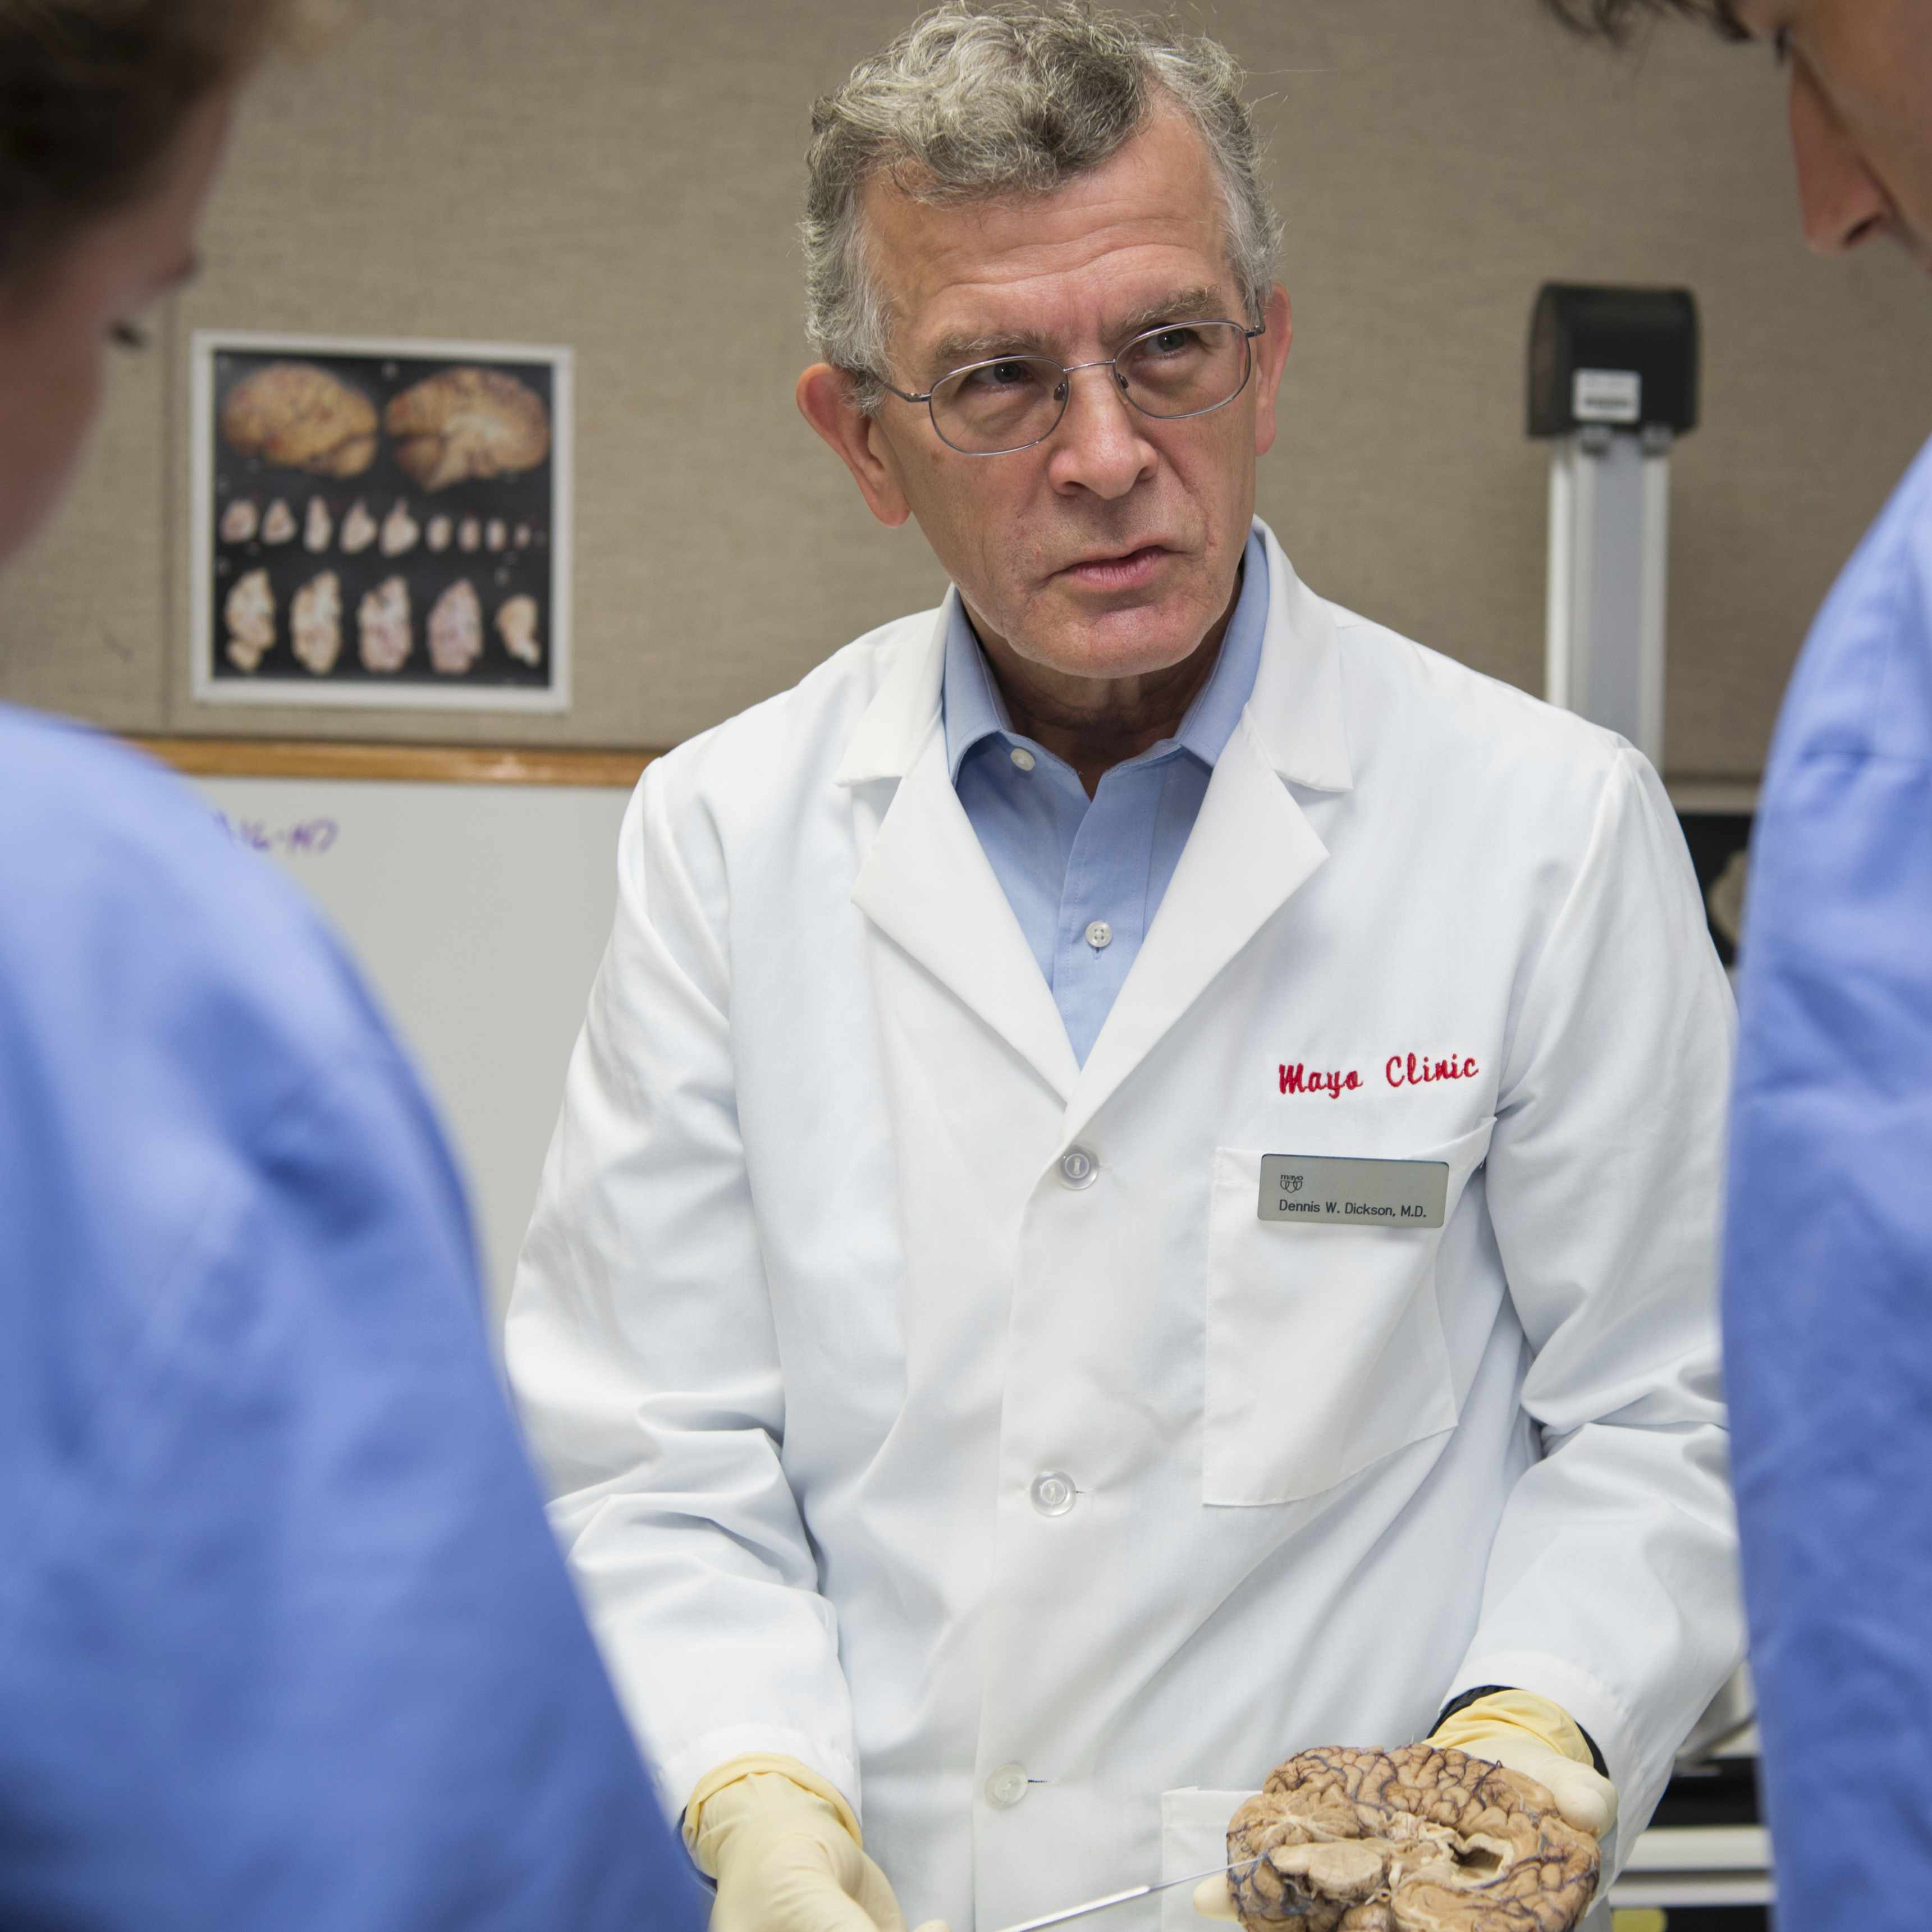 Dr. Dickson holding a dissected brain